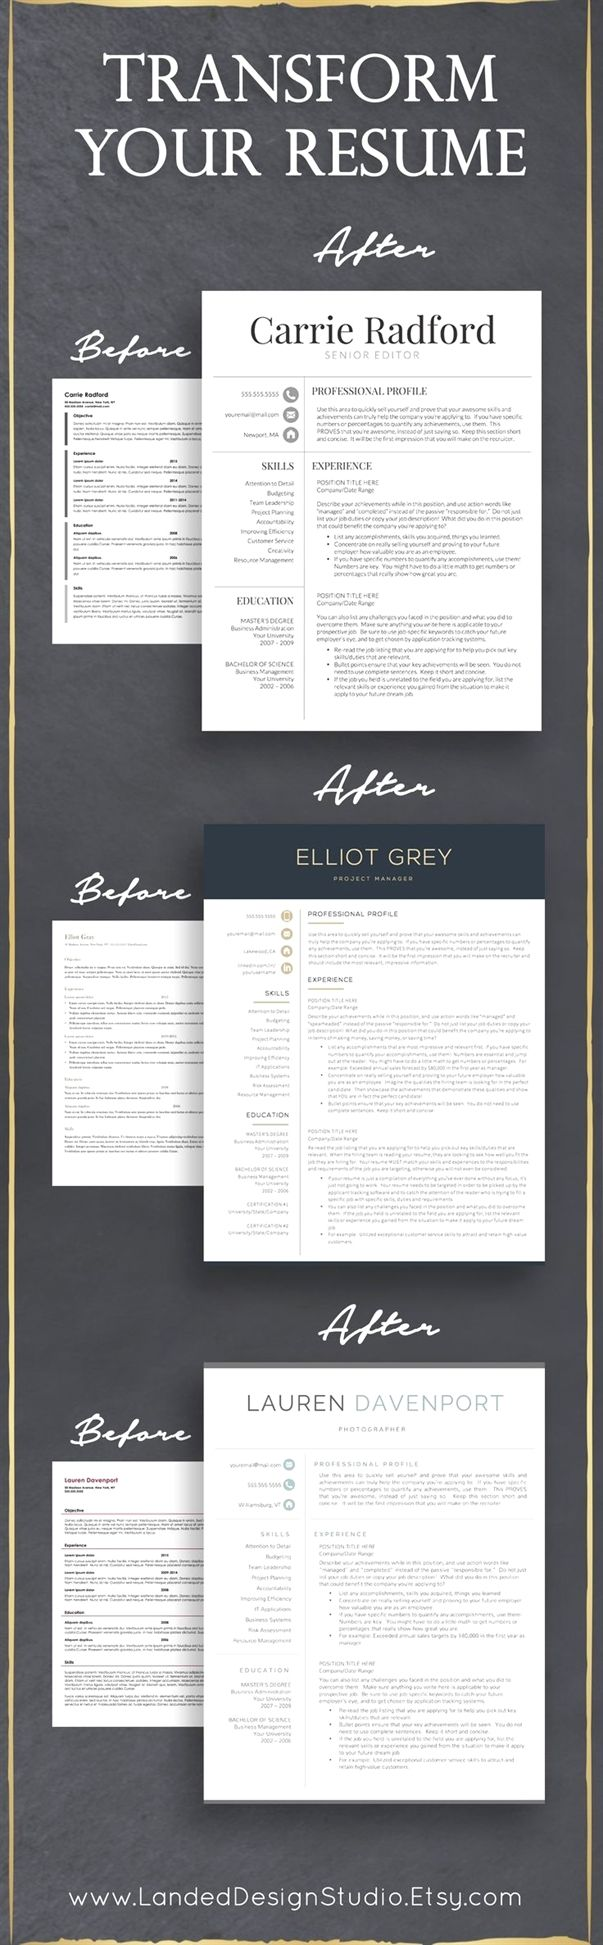 88 best Resume Writing images on Pinterest | Resume tips, Interview ...